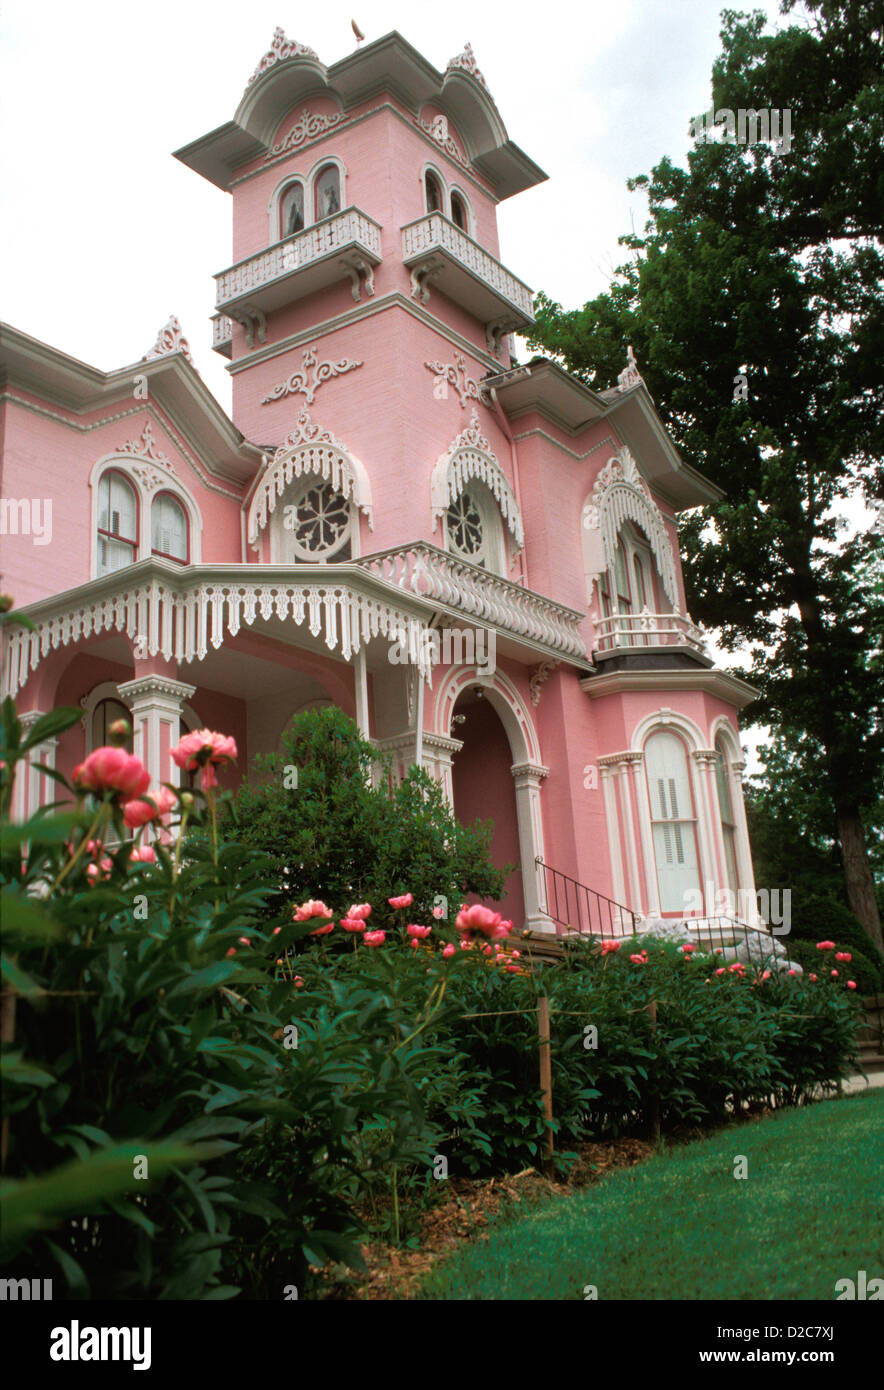 New York, Wellsville. Pink Victorian House. - Stock Image